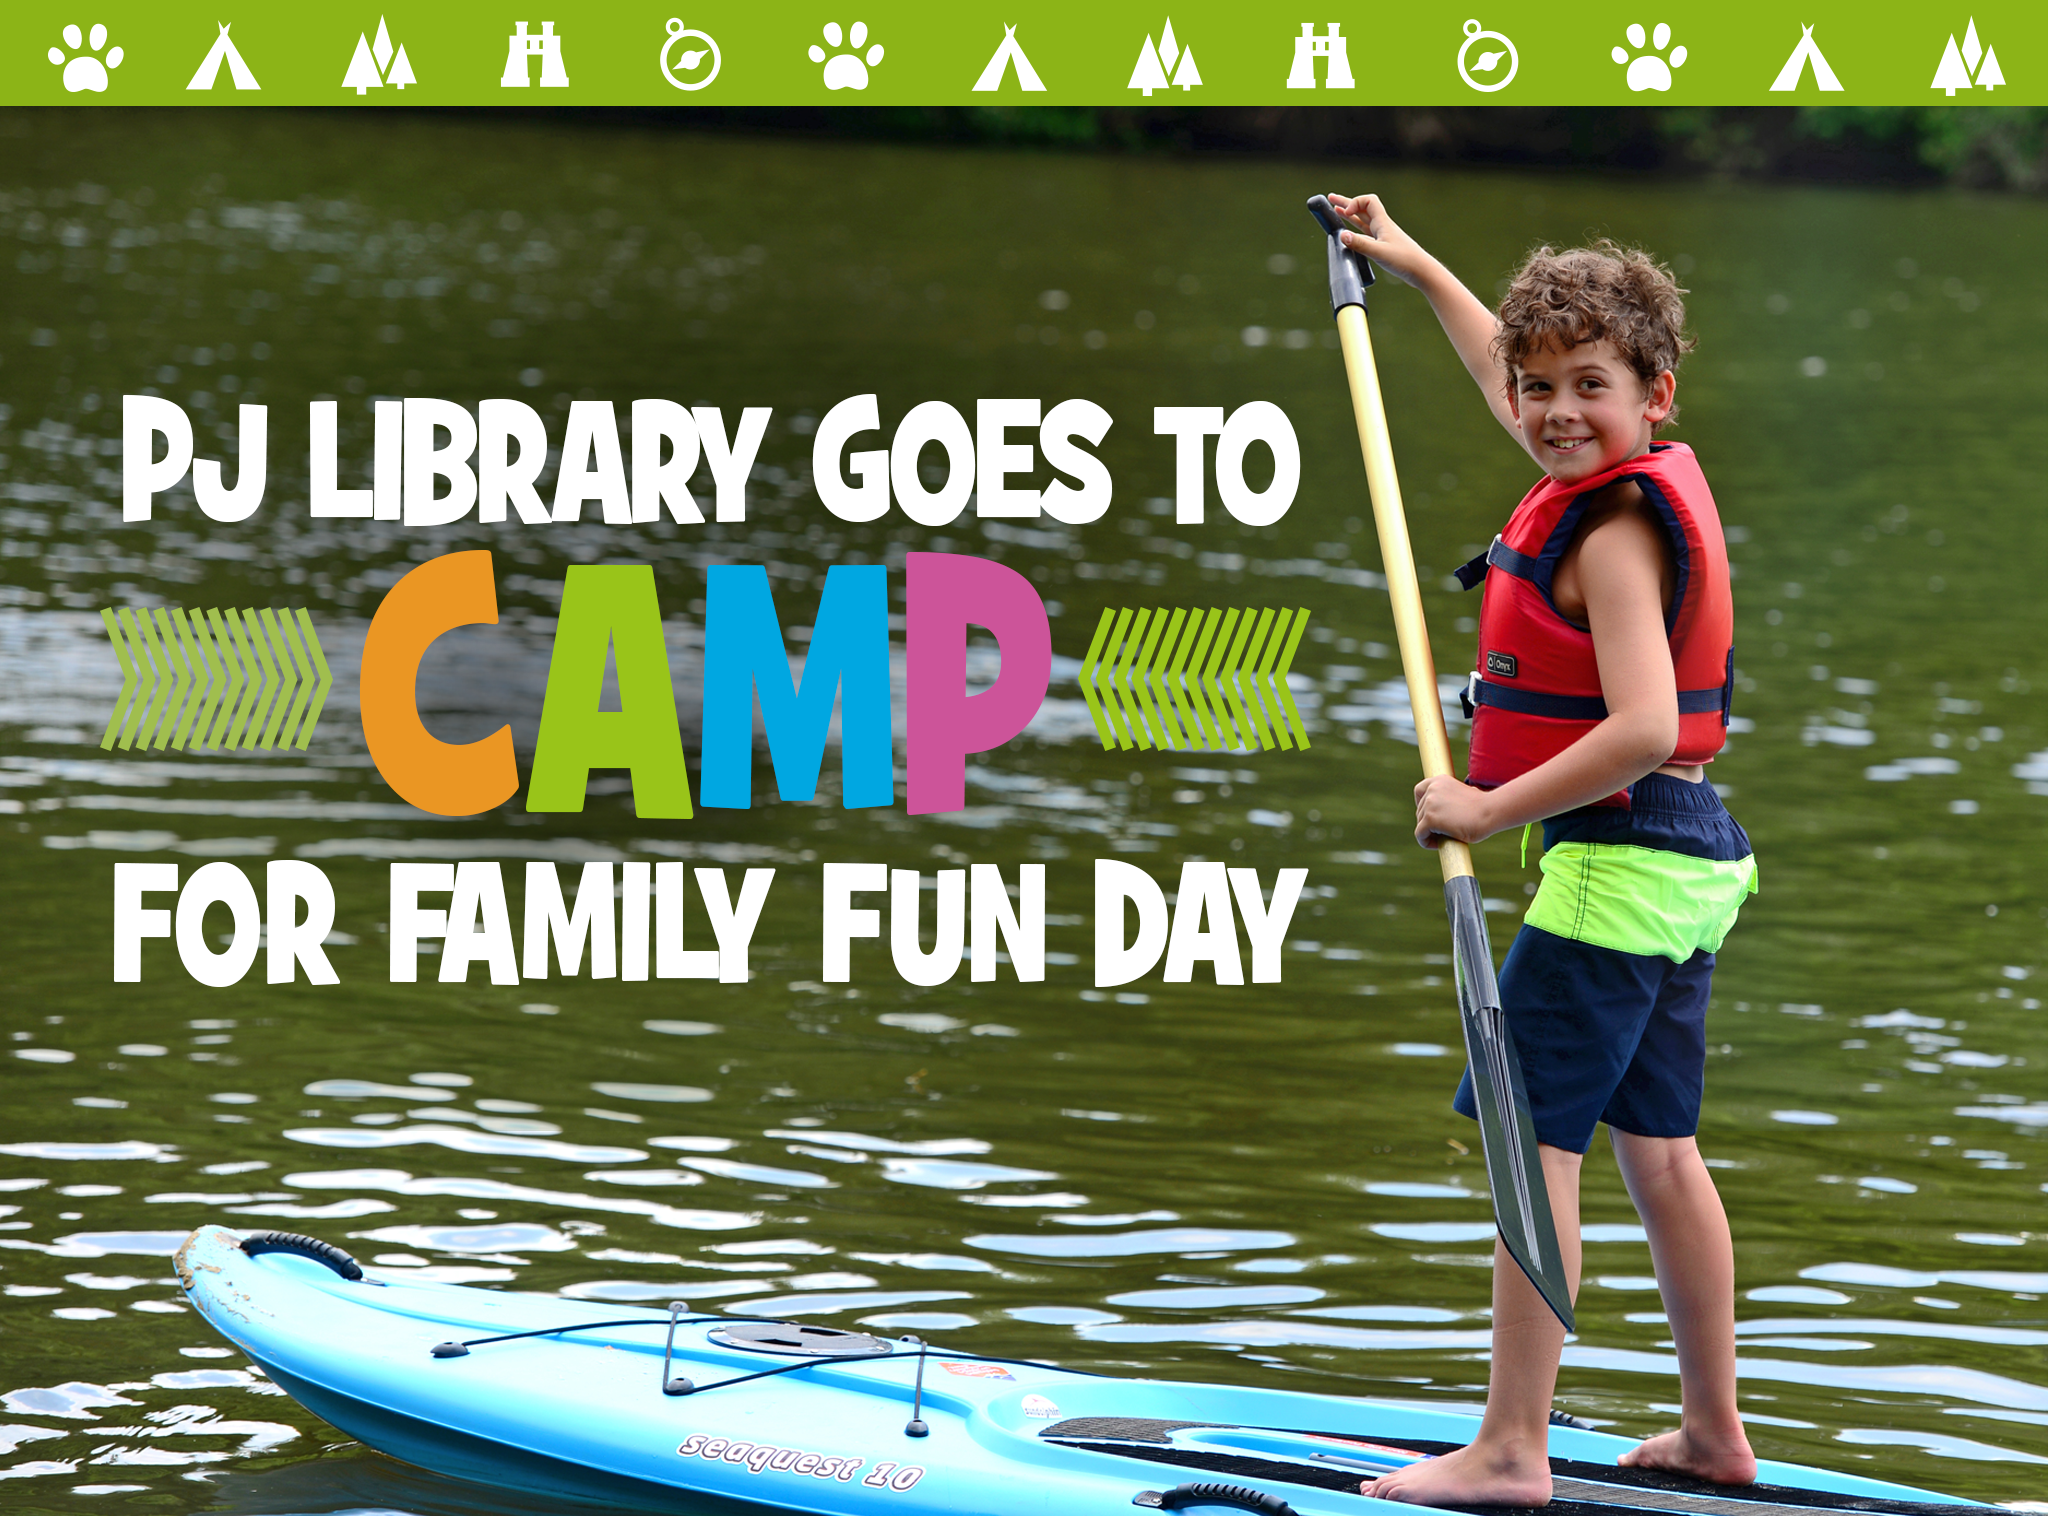 PJ Library Goes to Camp